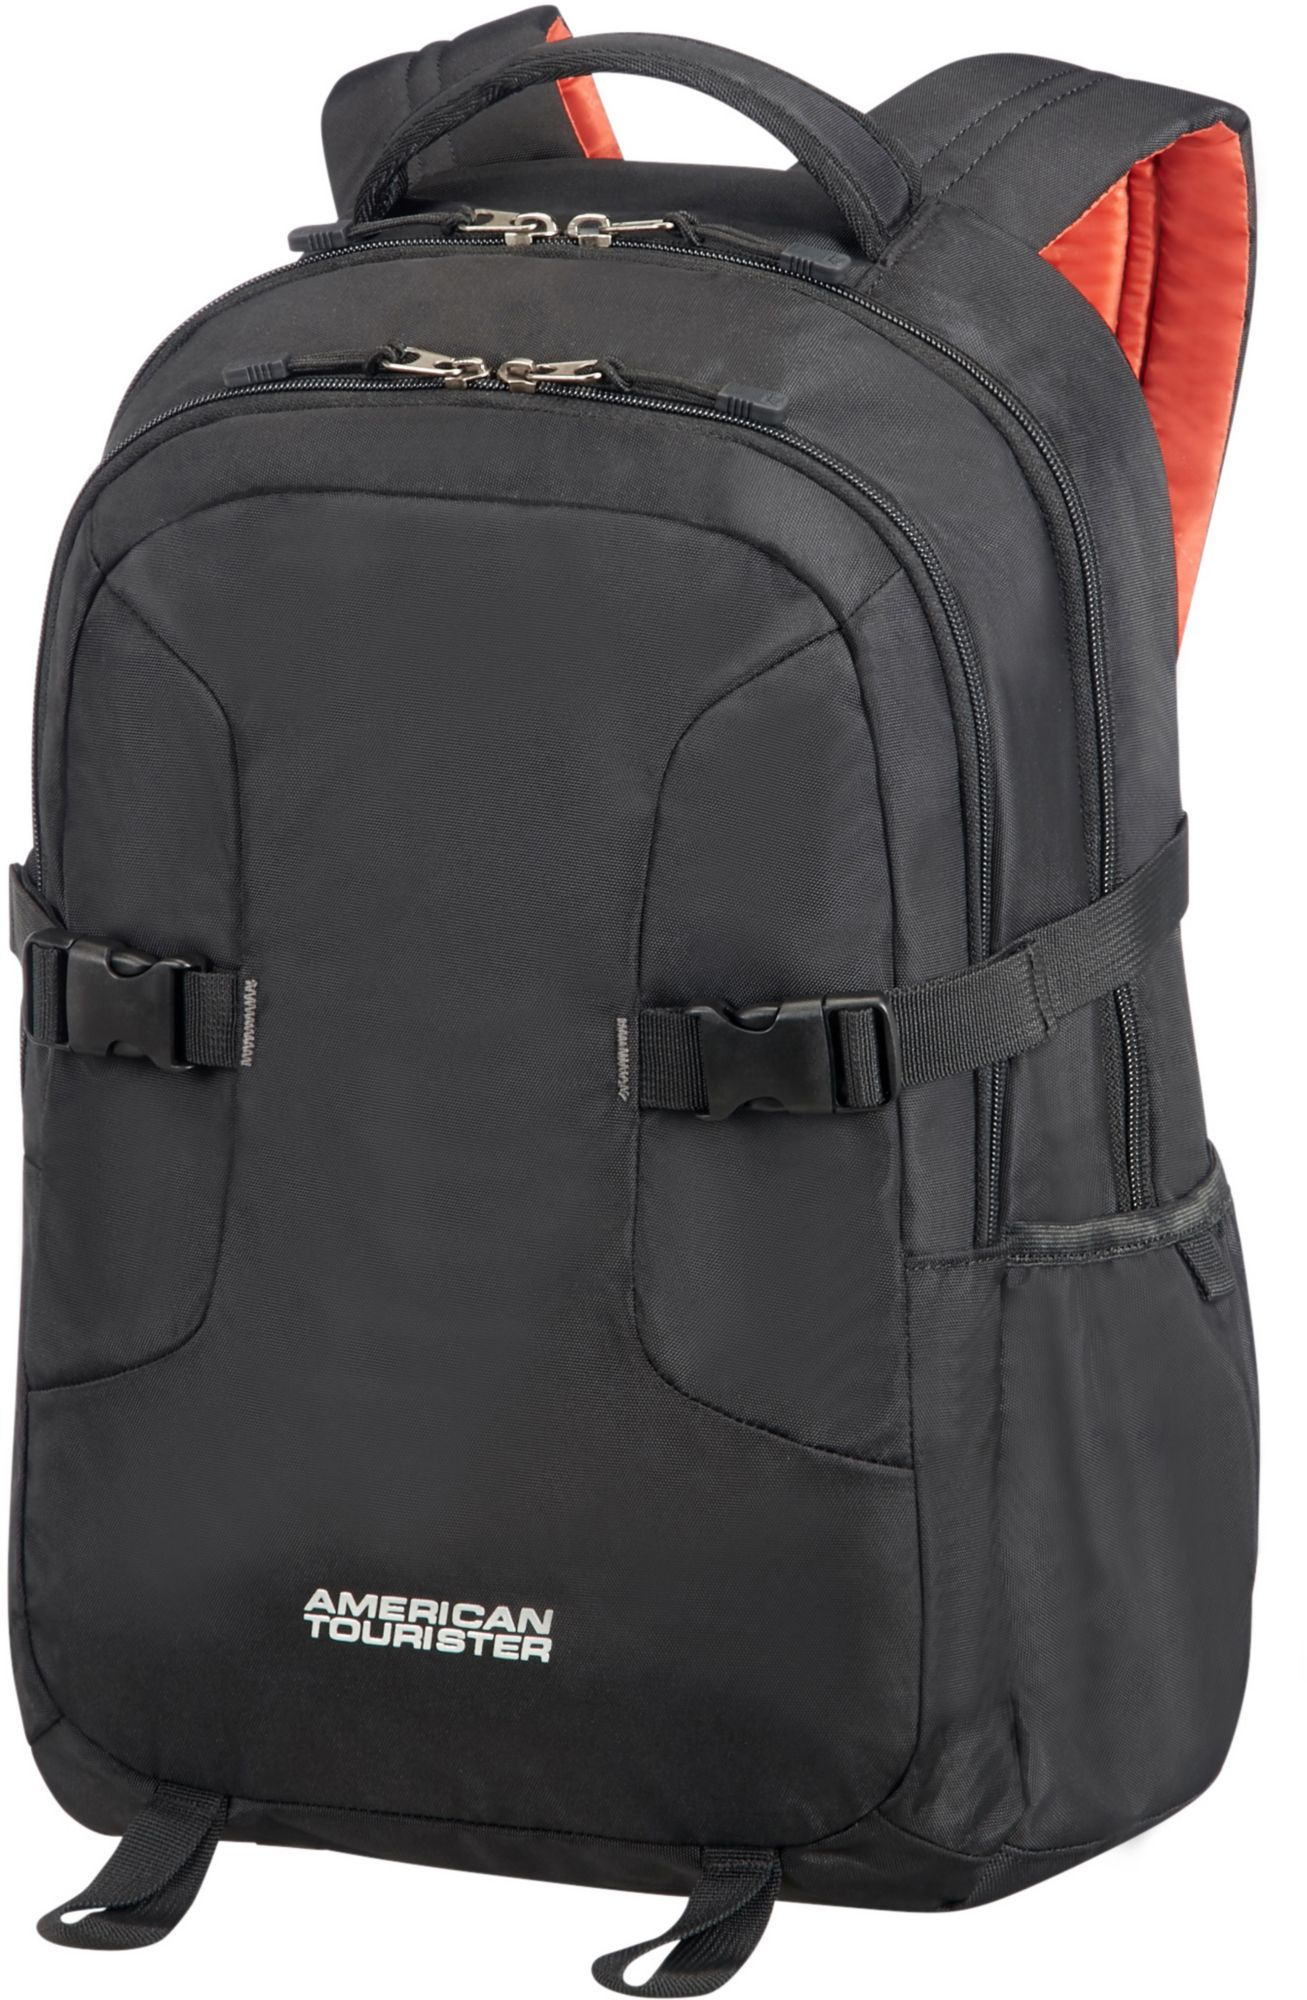 AMERICAN TOURISTER American Tourister Laptopbackpack, »Urban Groove UG2«